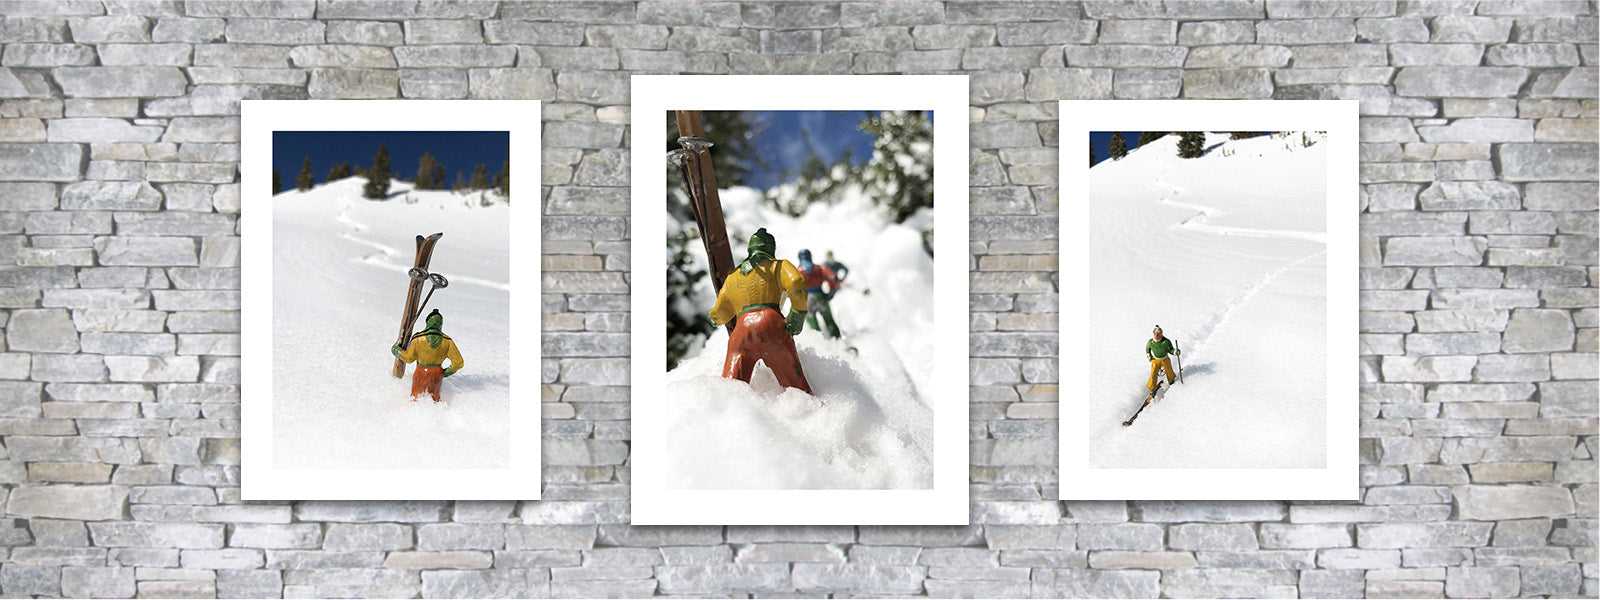 Vintage toy skiers photo pairings by Hooey Mountain